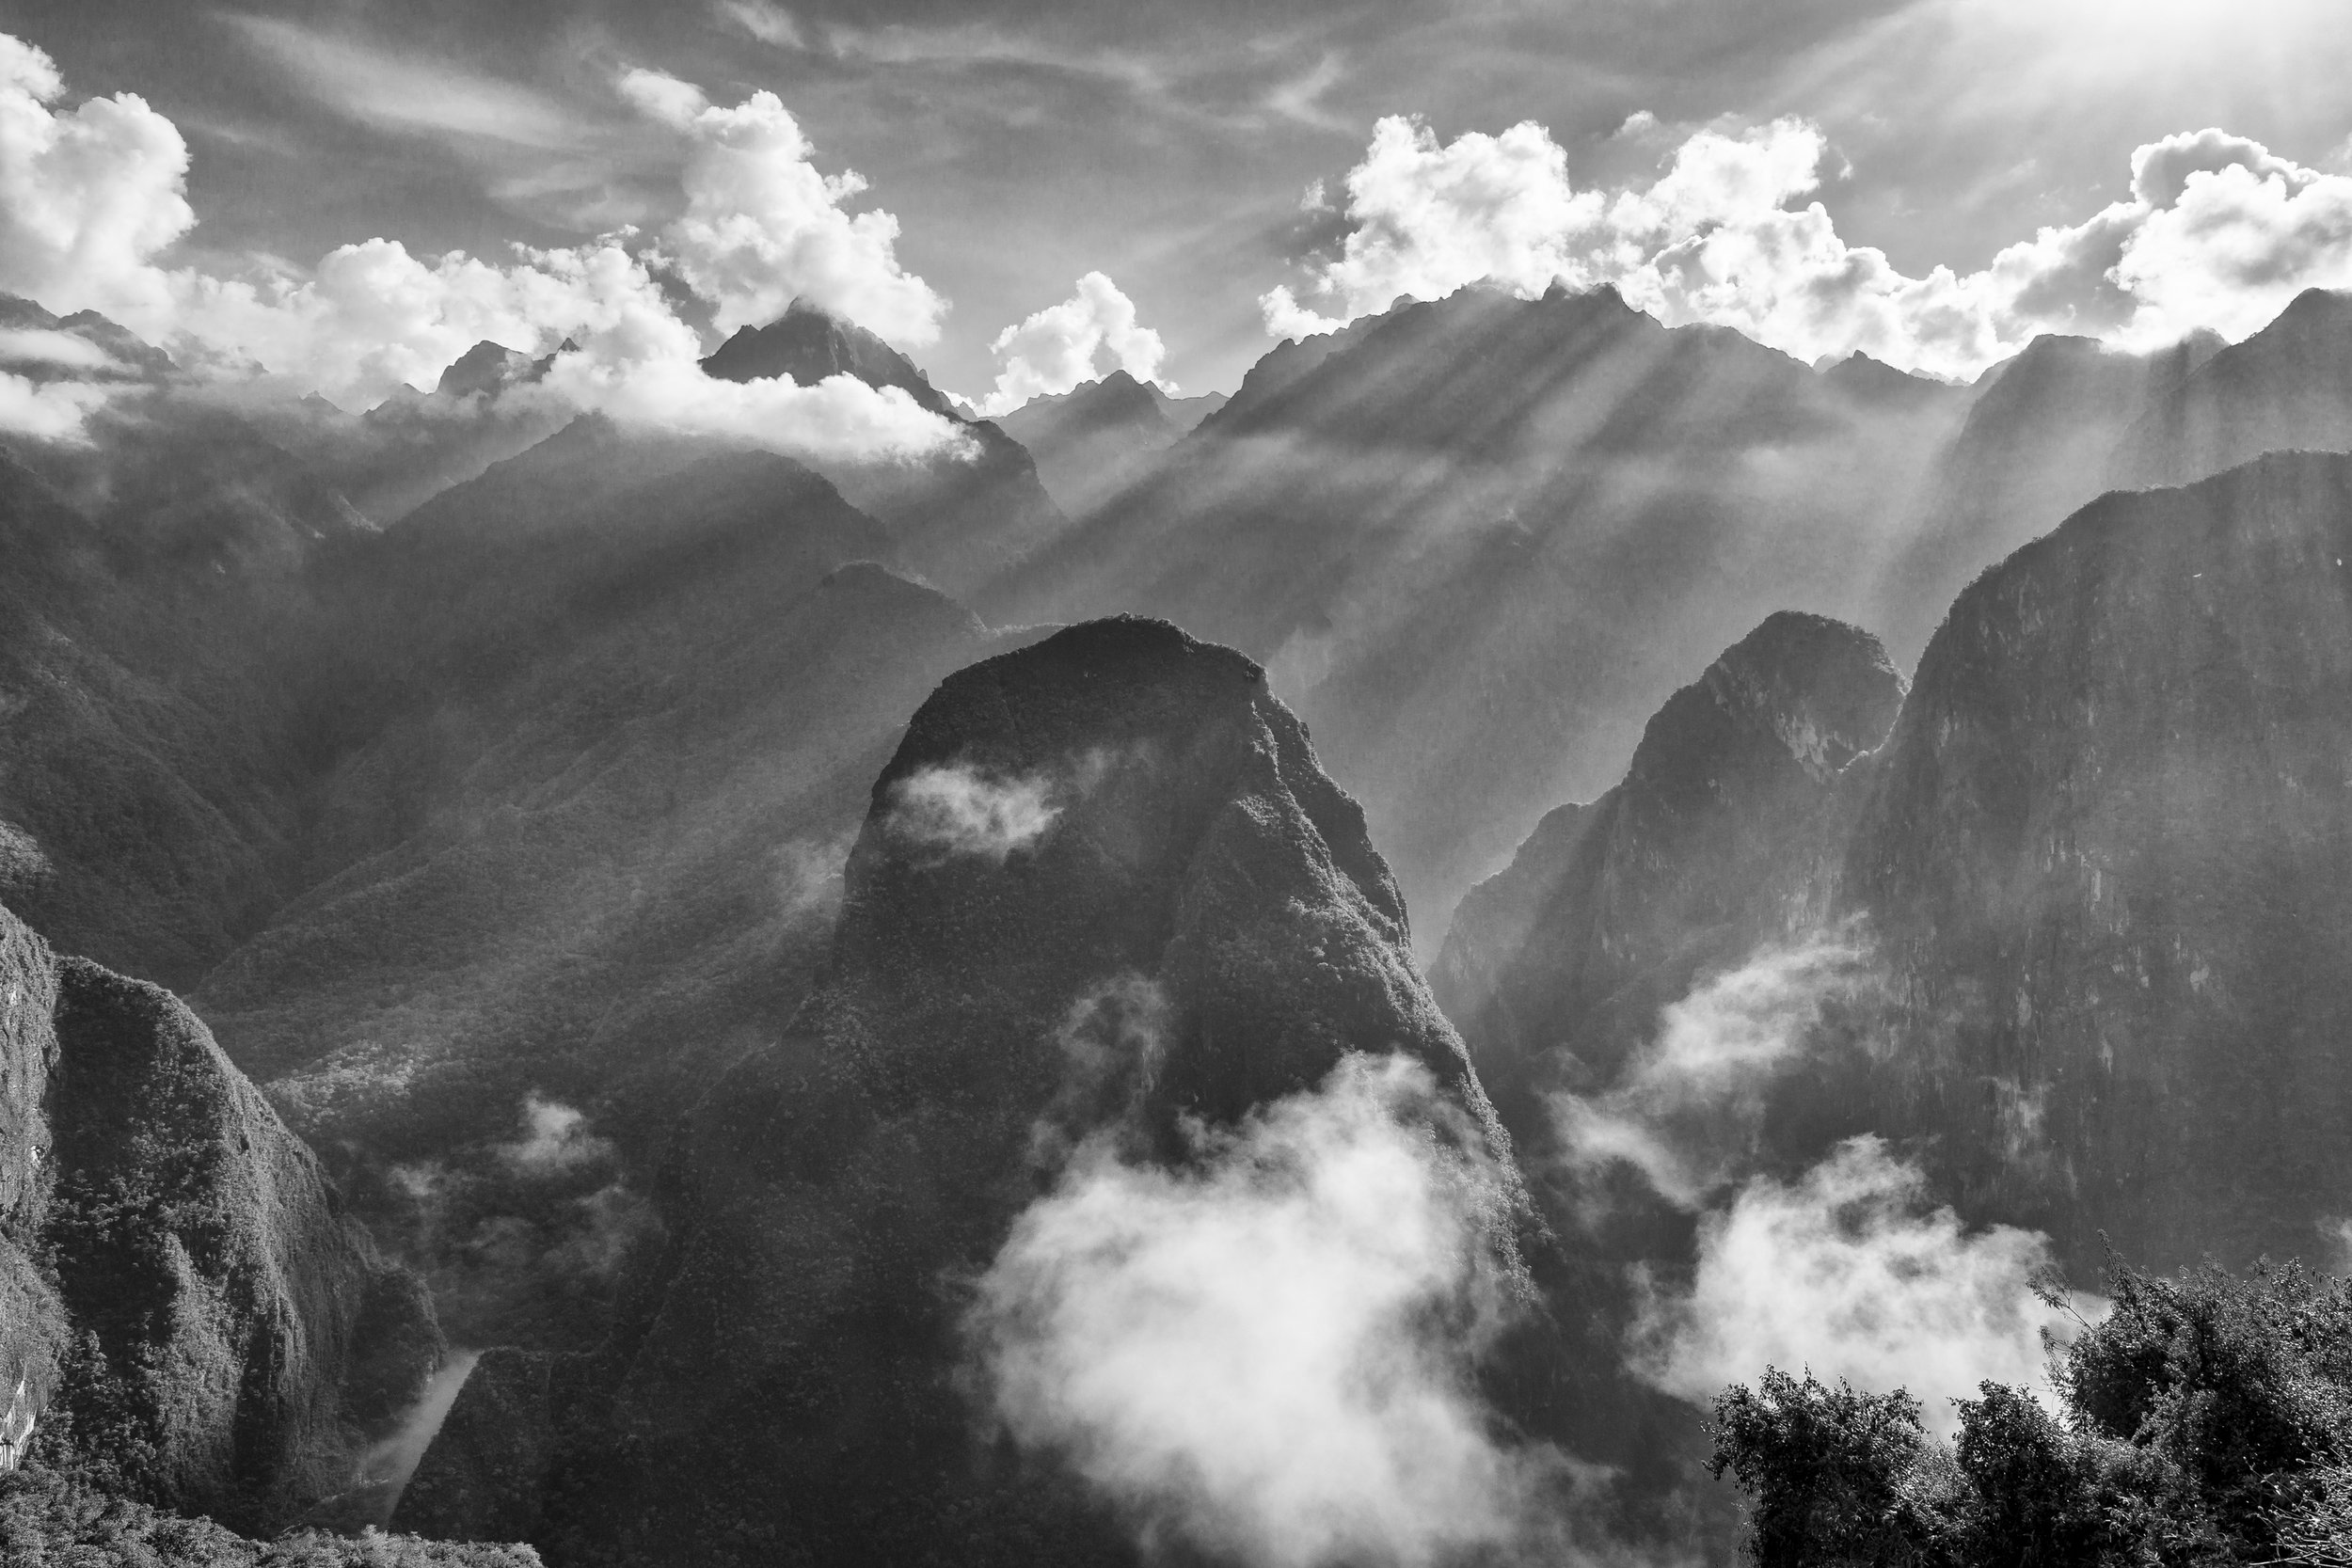 Andes in Mist 2